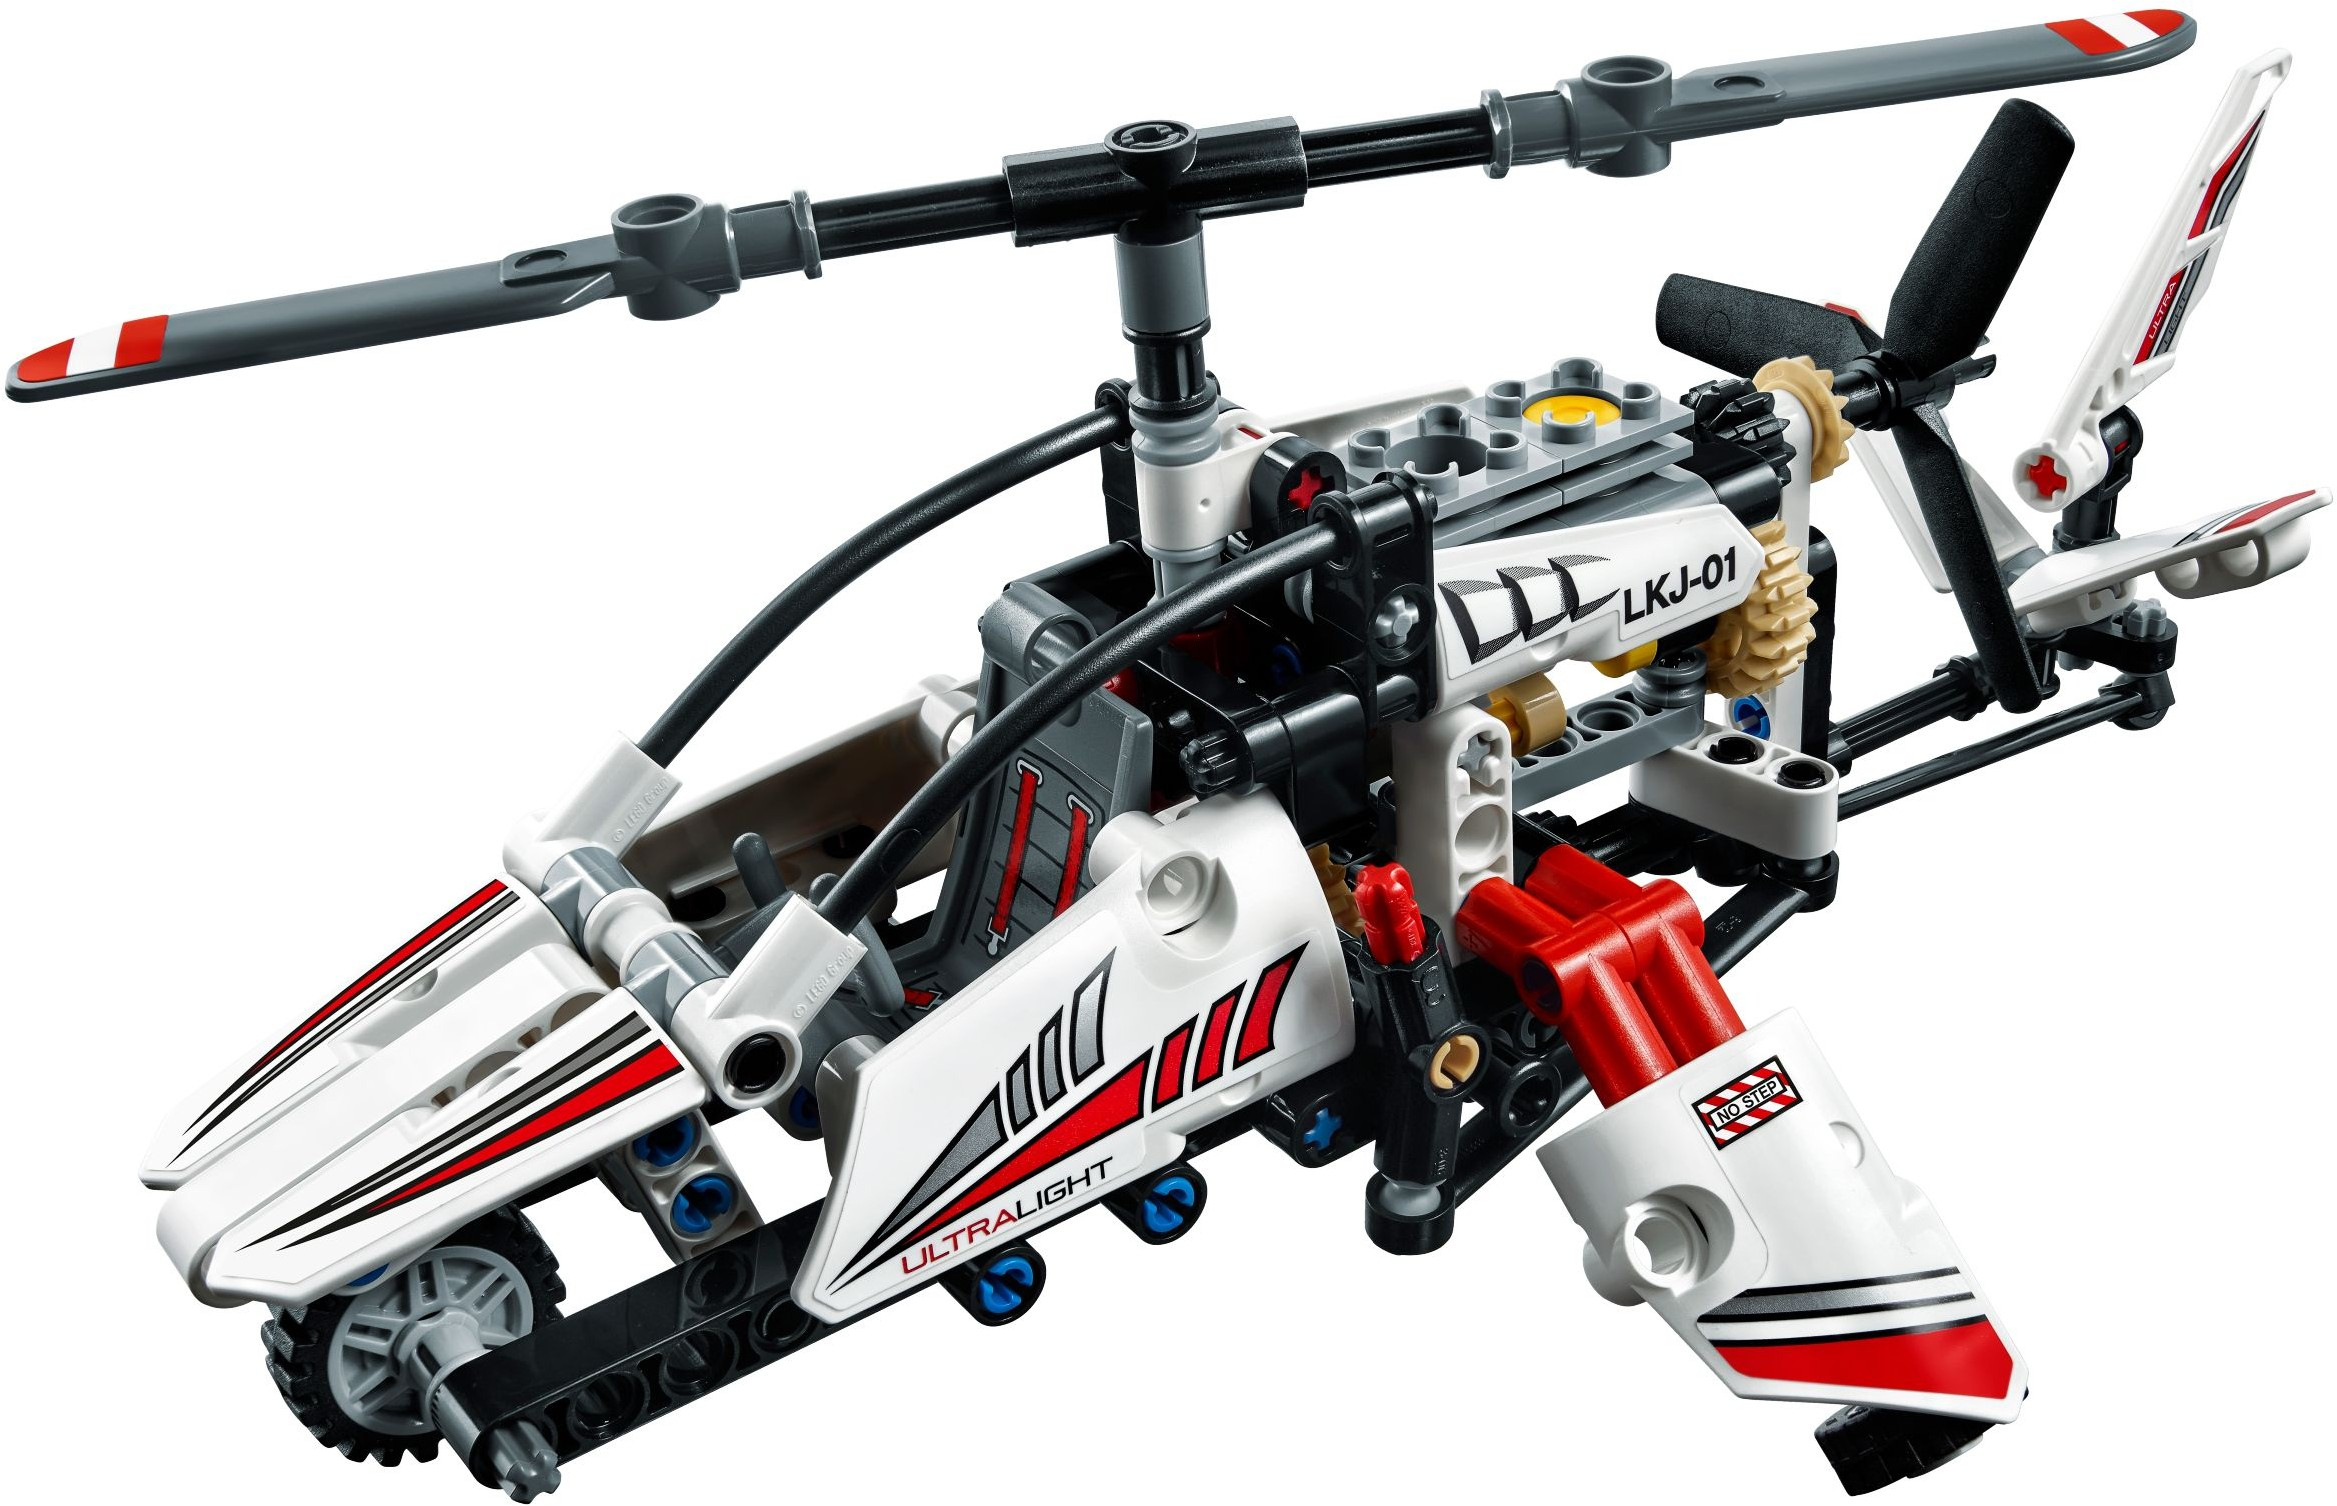 42057 LEGO Technic Ultralight Helicopter